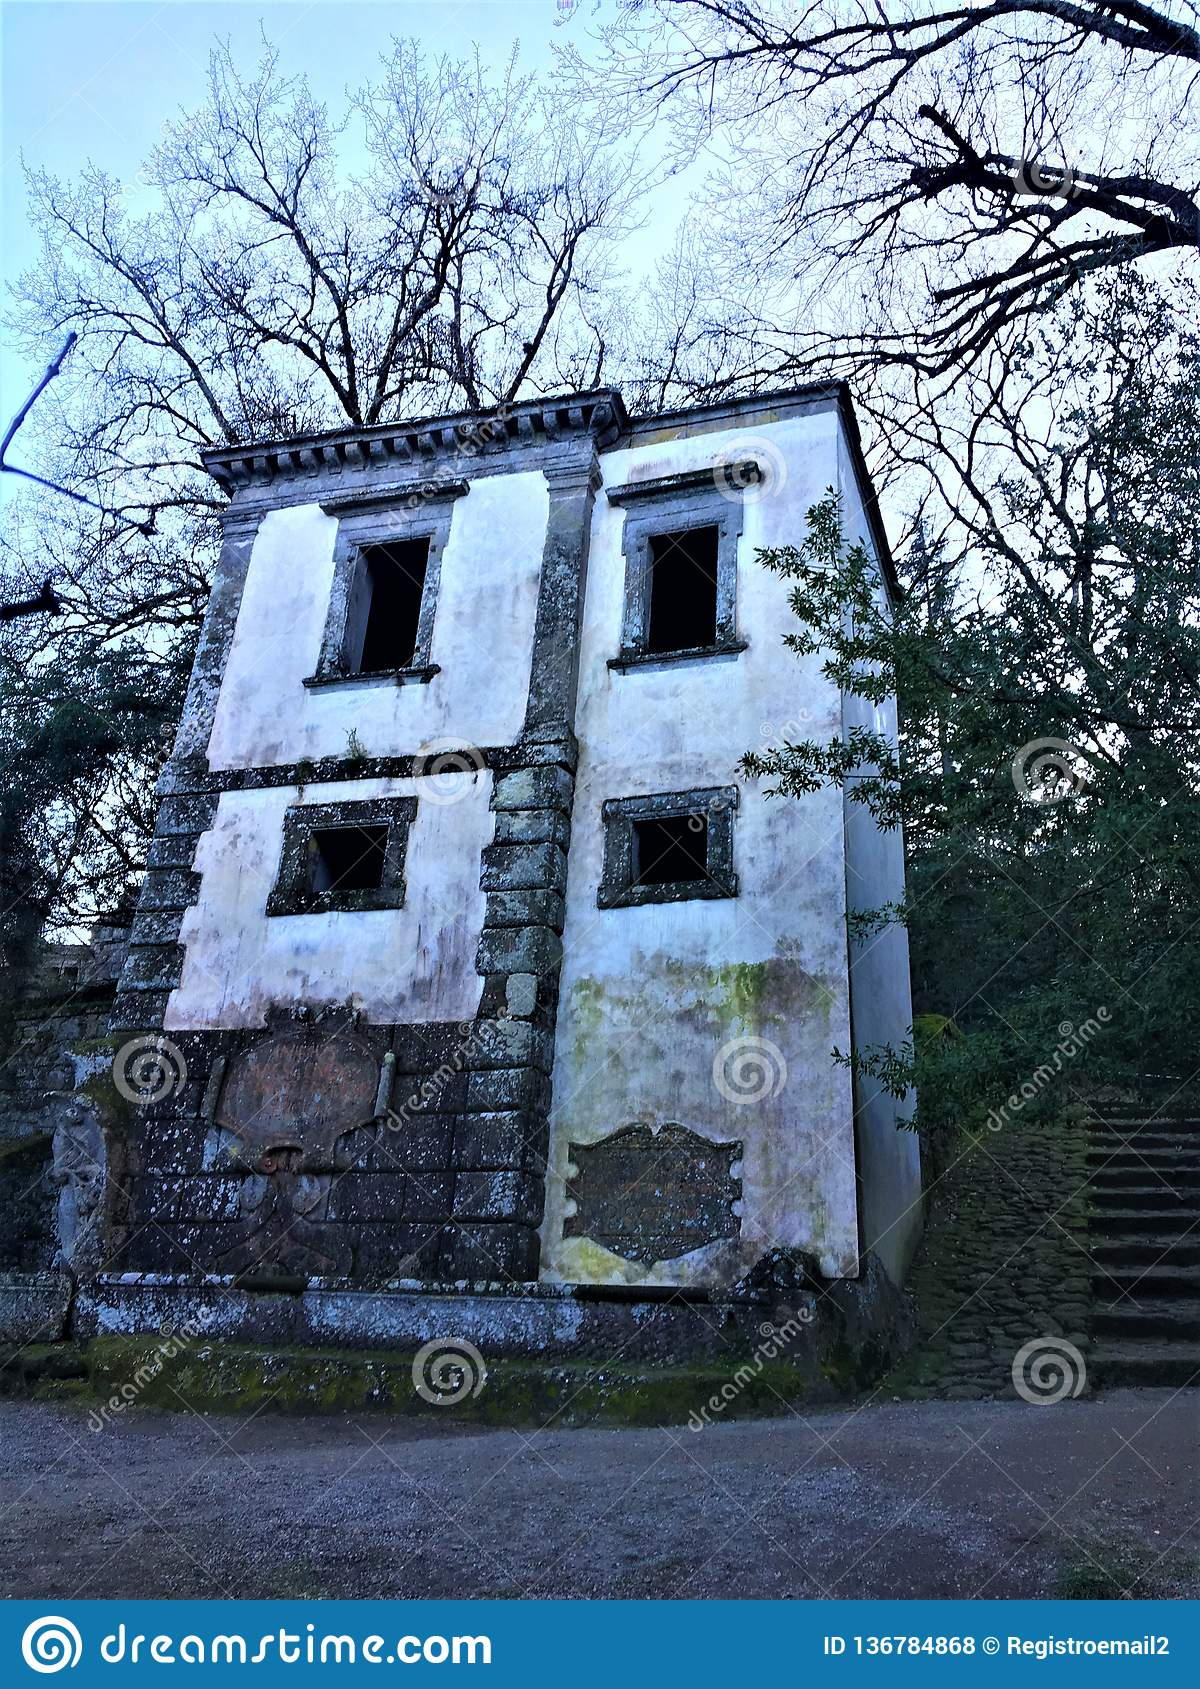 Park of the Monsters, Sacred Grove, Garden of Bomarzo. Leaning house and alchemy